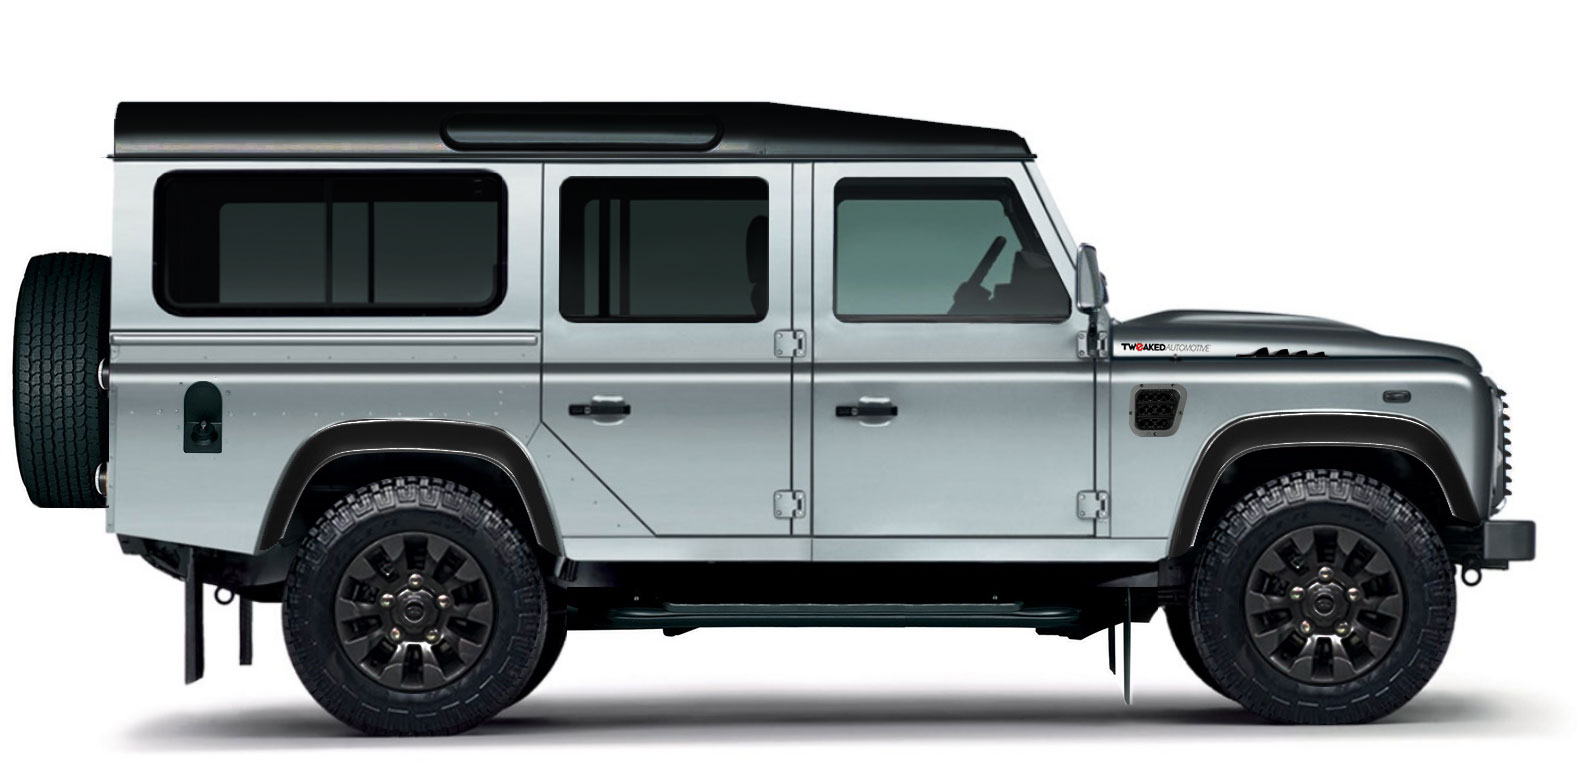 Land Rover Defender 110 >> Land Rover Defender 110 XS Station Wagon - Tweaked Edition - Tweaked Automotive